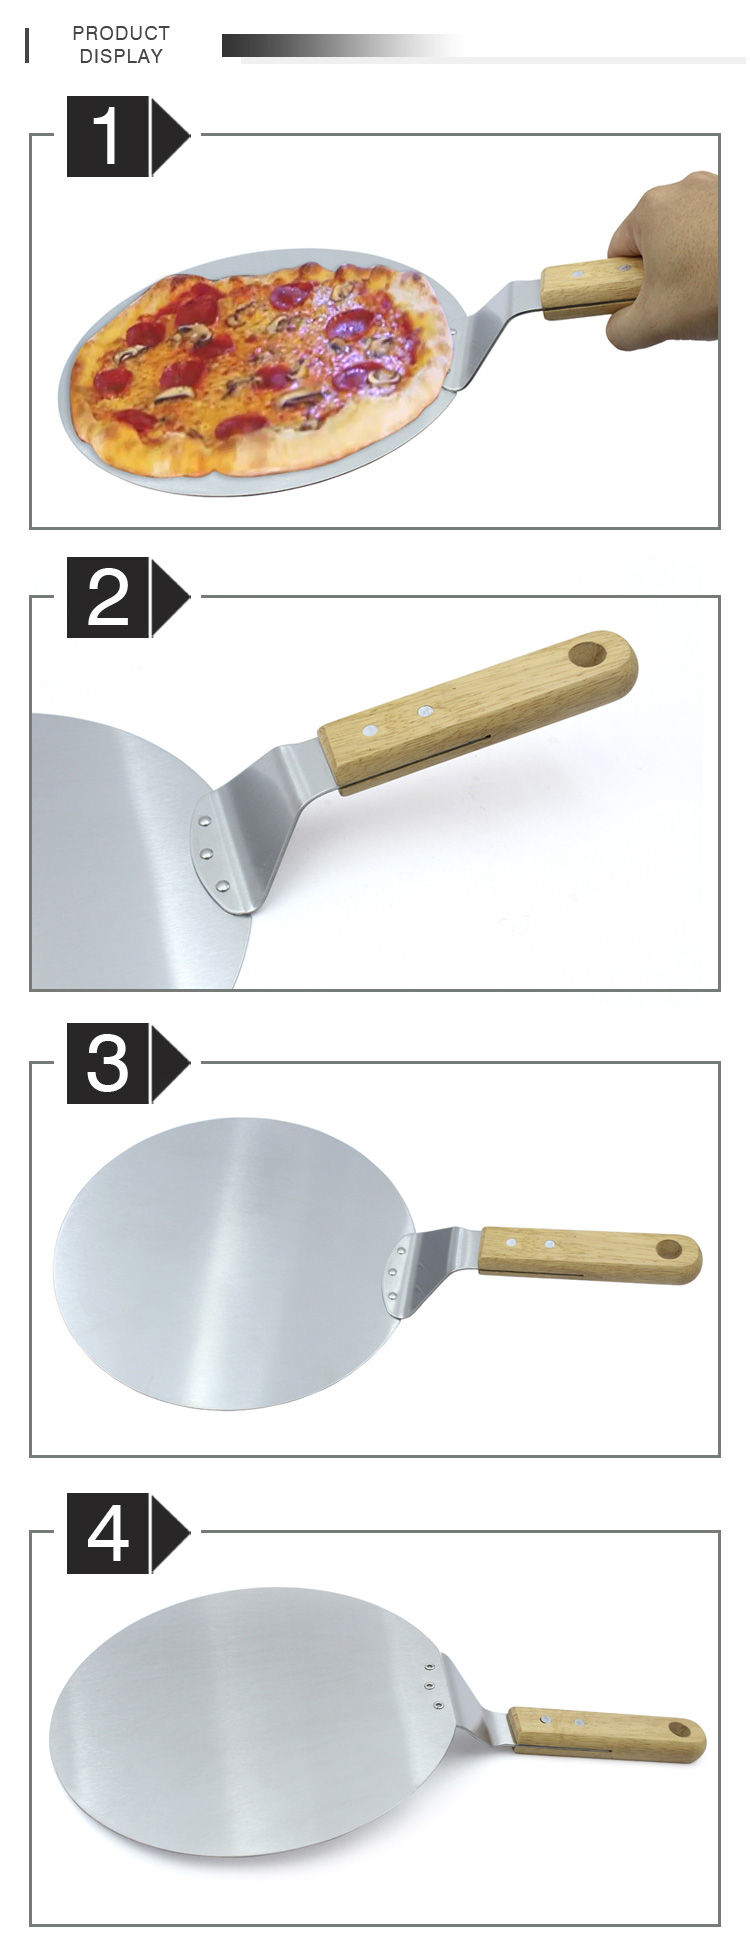 10 zoll holz griff edelstahl pizza schaufel pizza peel pizza turner